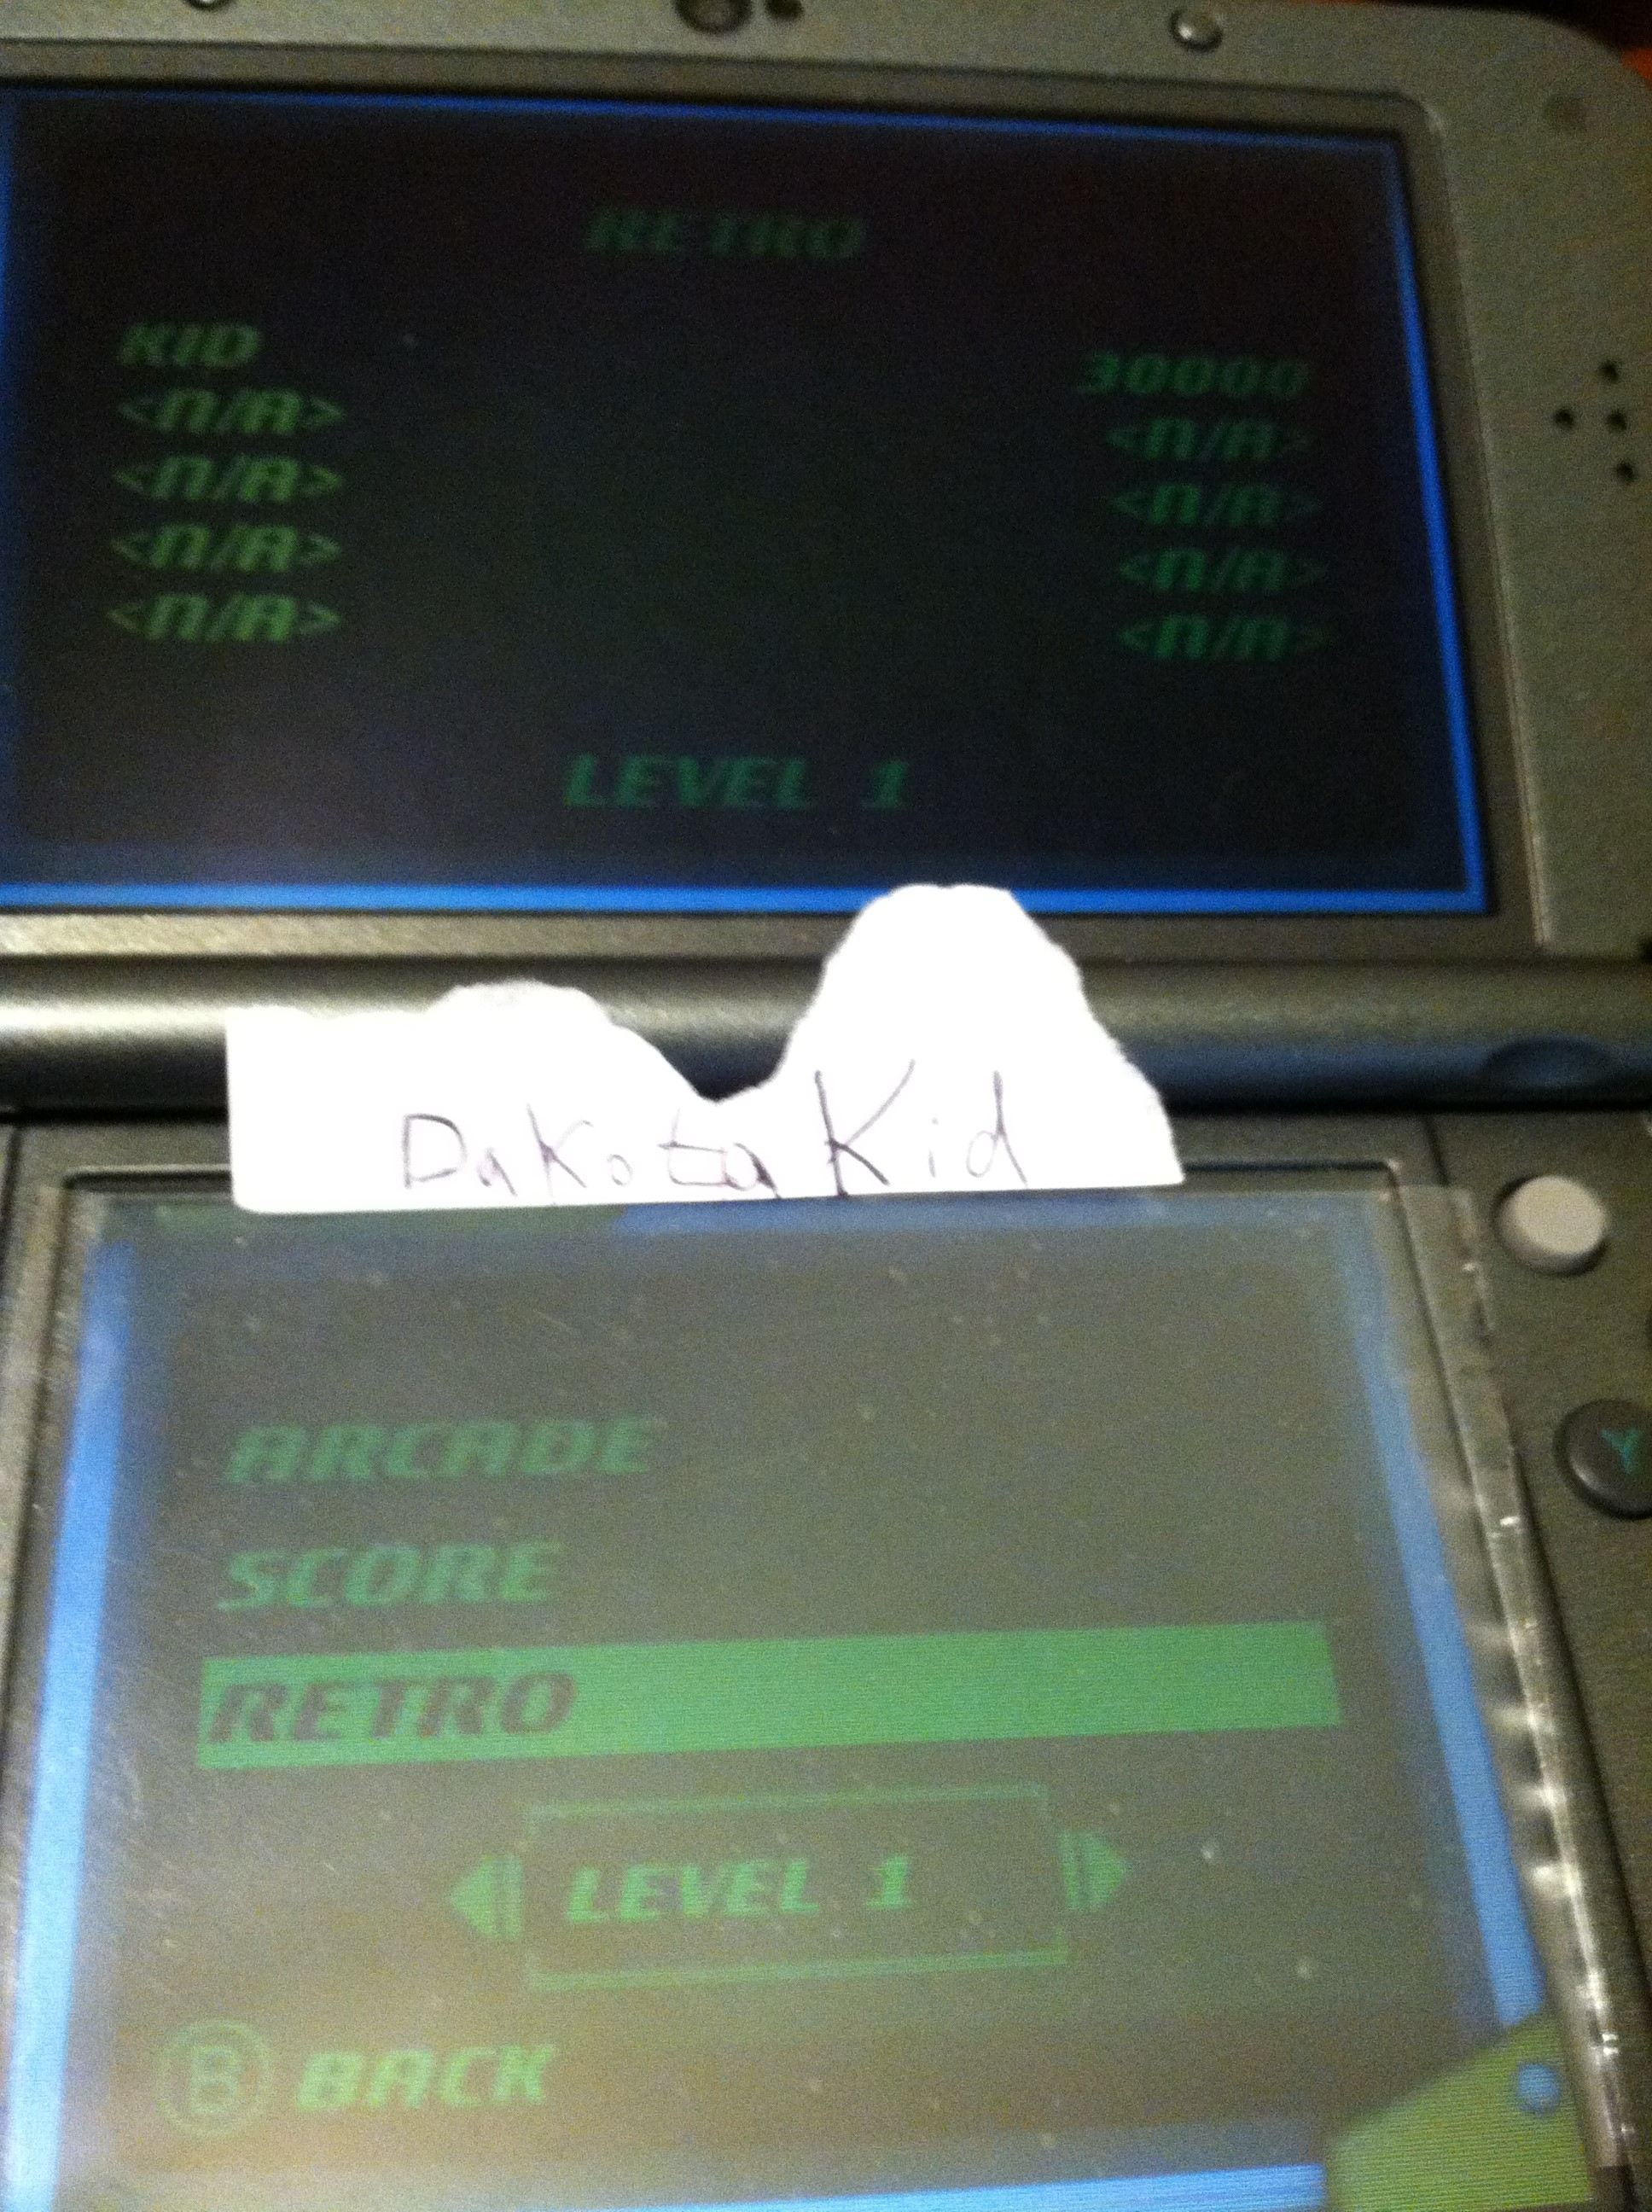 DakotaKid: Boulder Dash-XL 3D [Retro] (Nintendo 3DS) 30,000 points on 2017-11-30 17:33:54